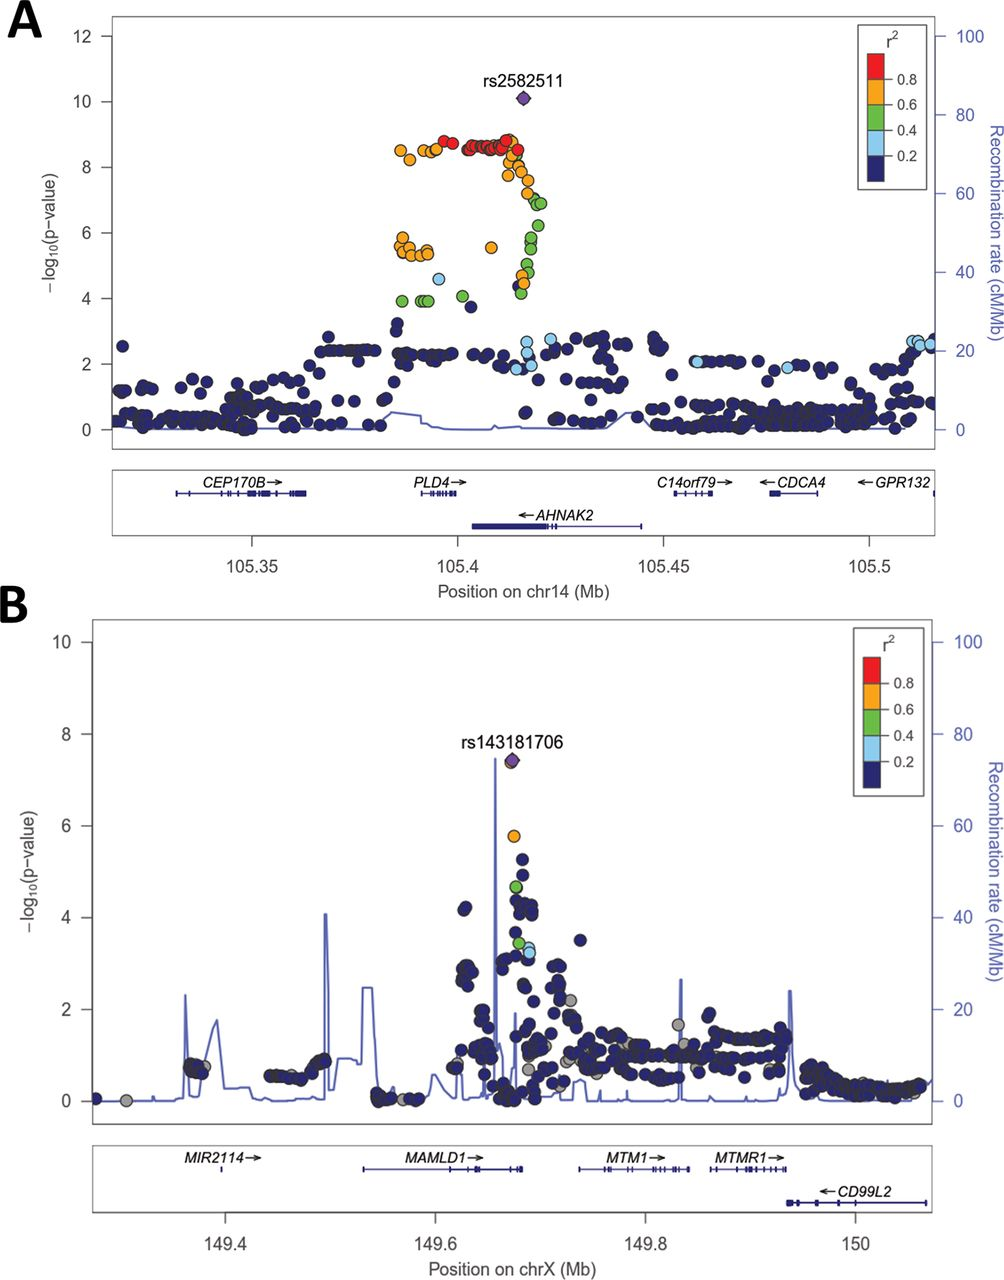 PLD4 is a genetic determinant to systemic lupus